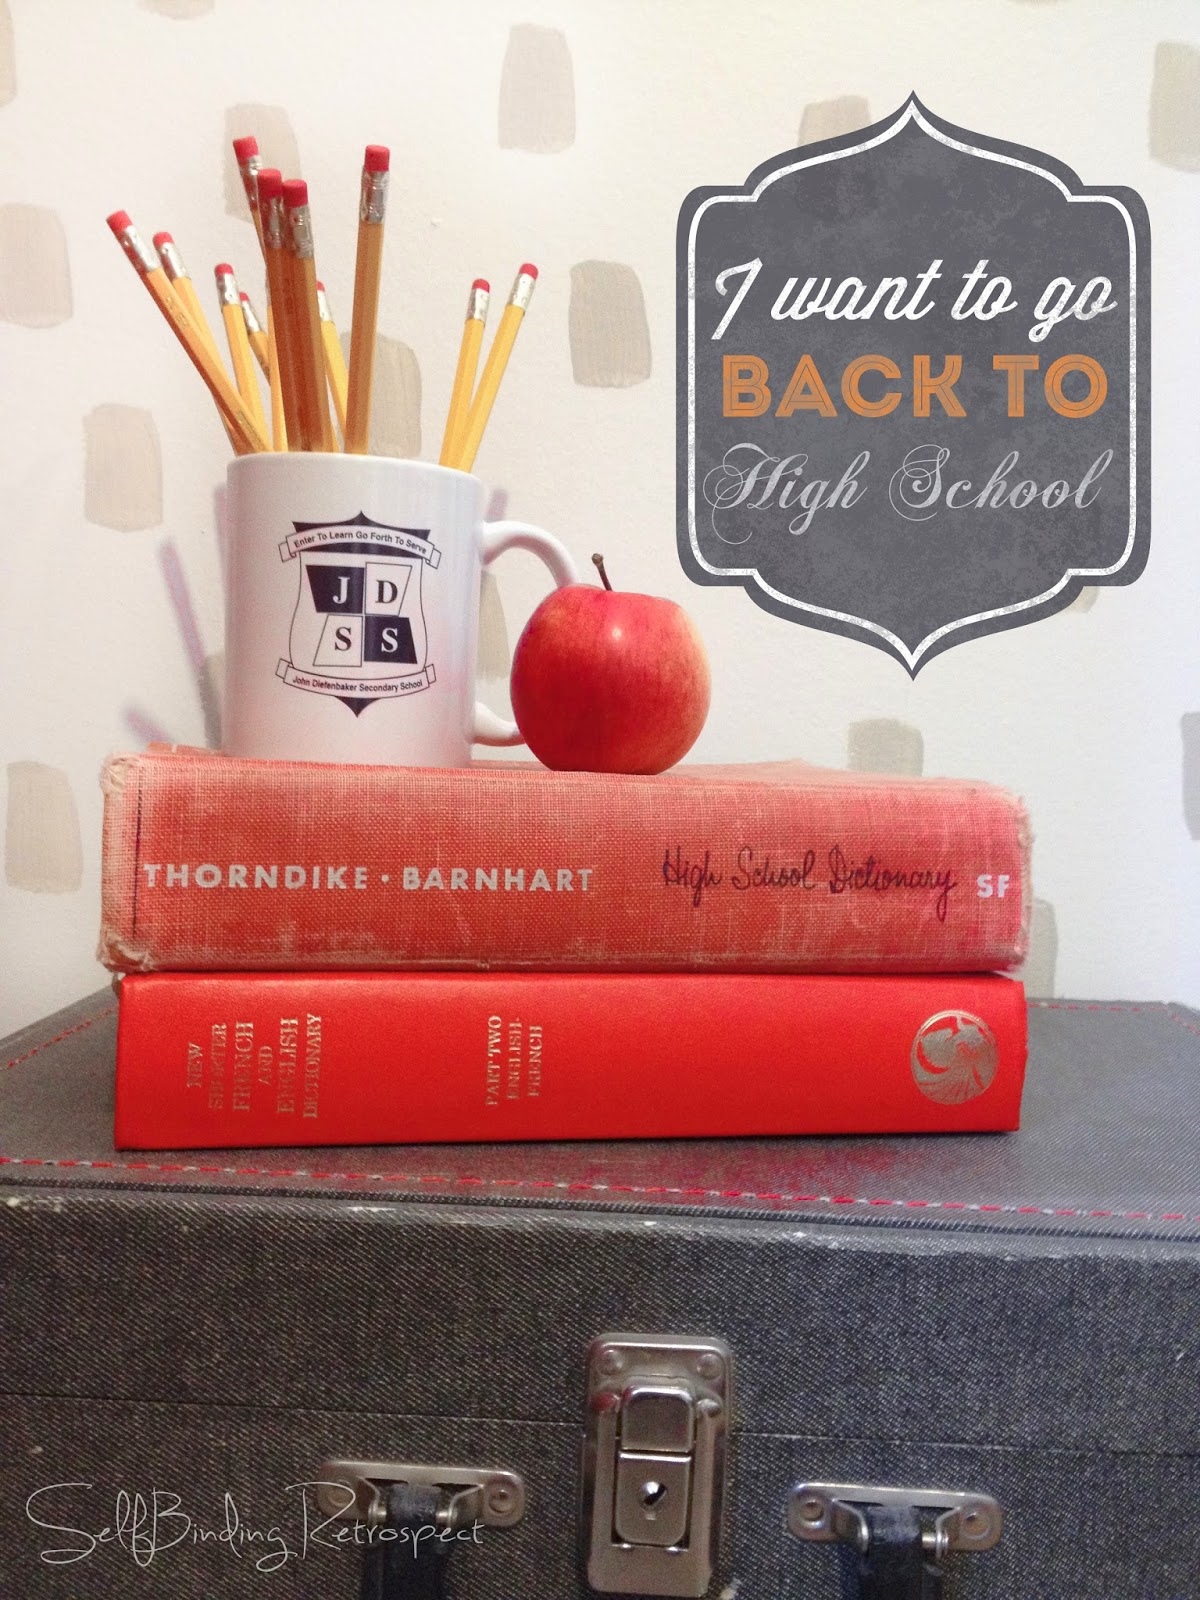 I want to go back to high school - SelfBinding Retrospect by Alanna Rusnak